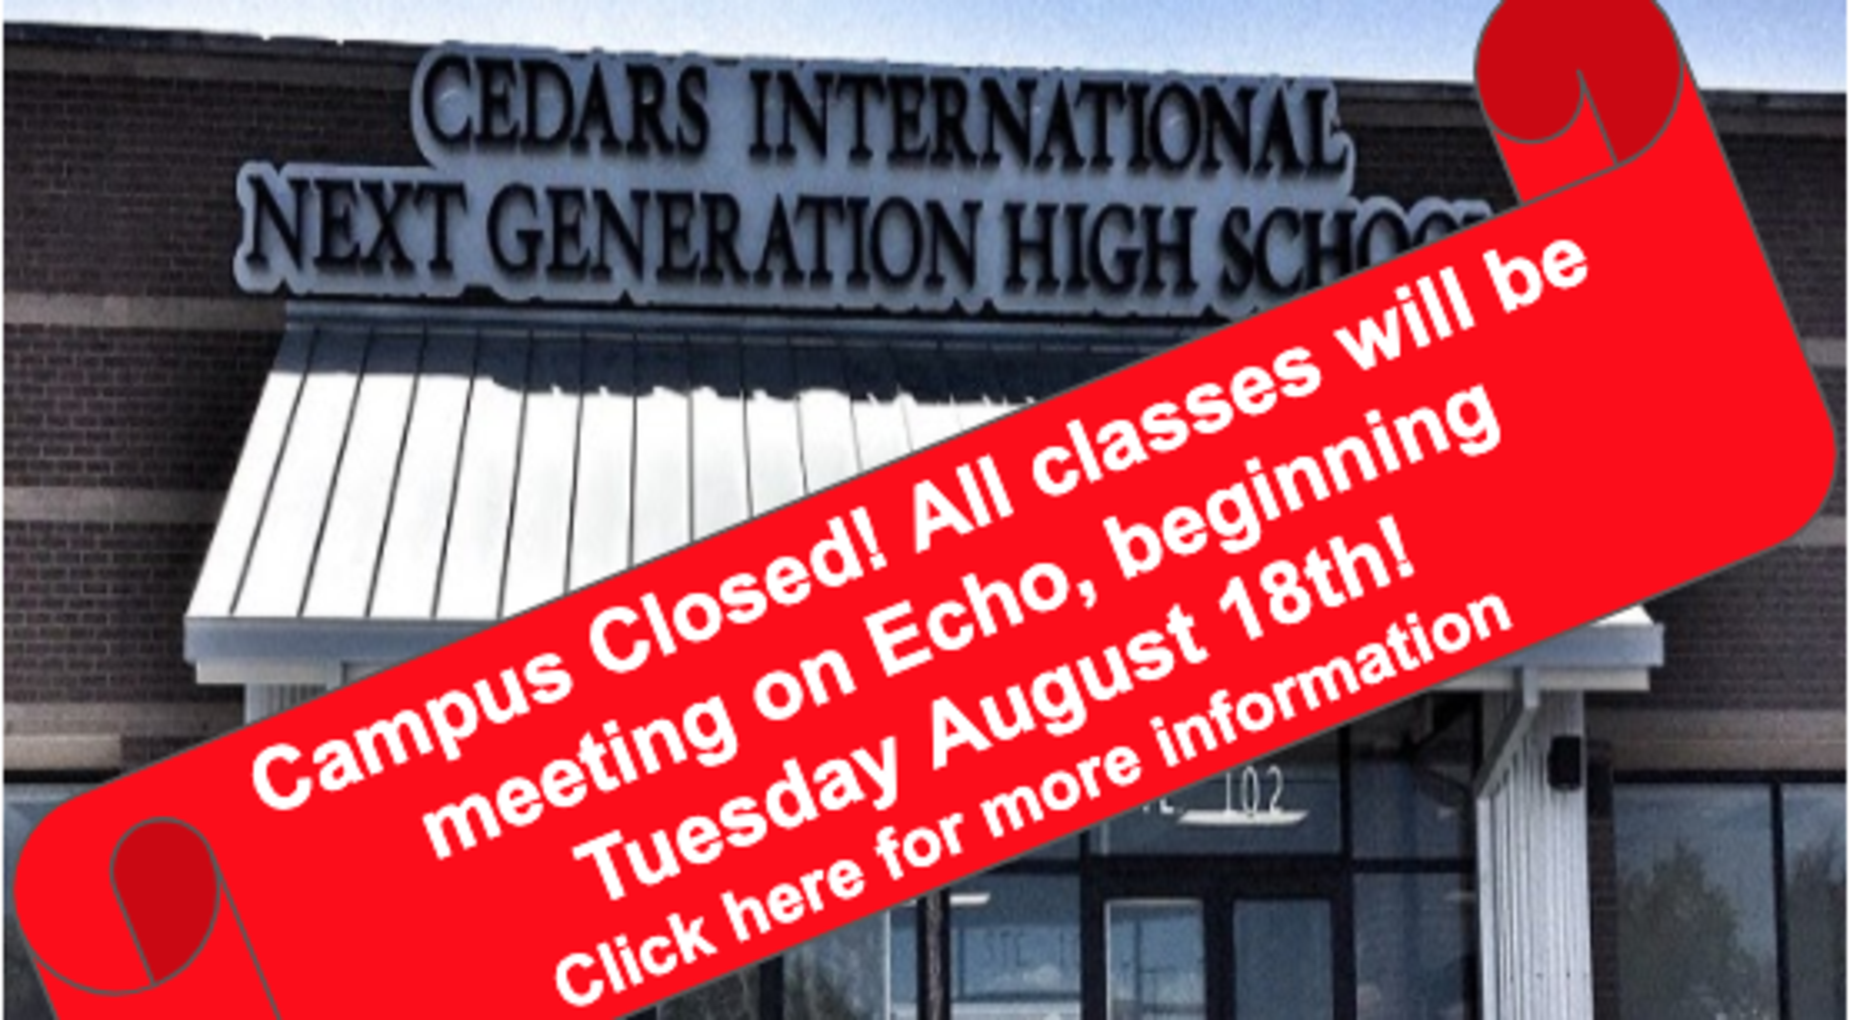 Campus Closed! Online Classes start Tuesday August 18th